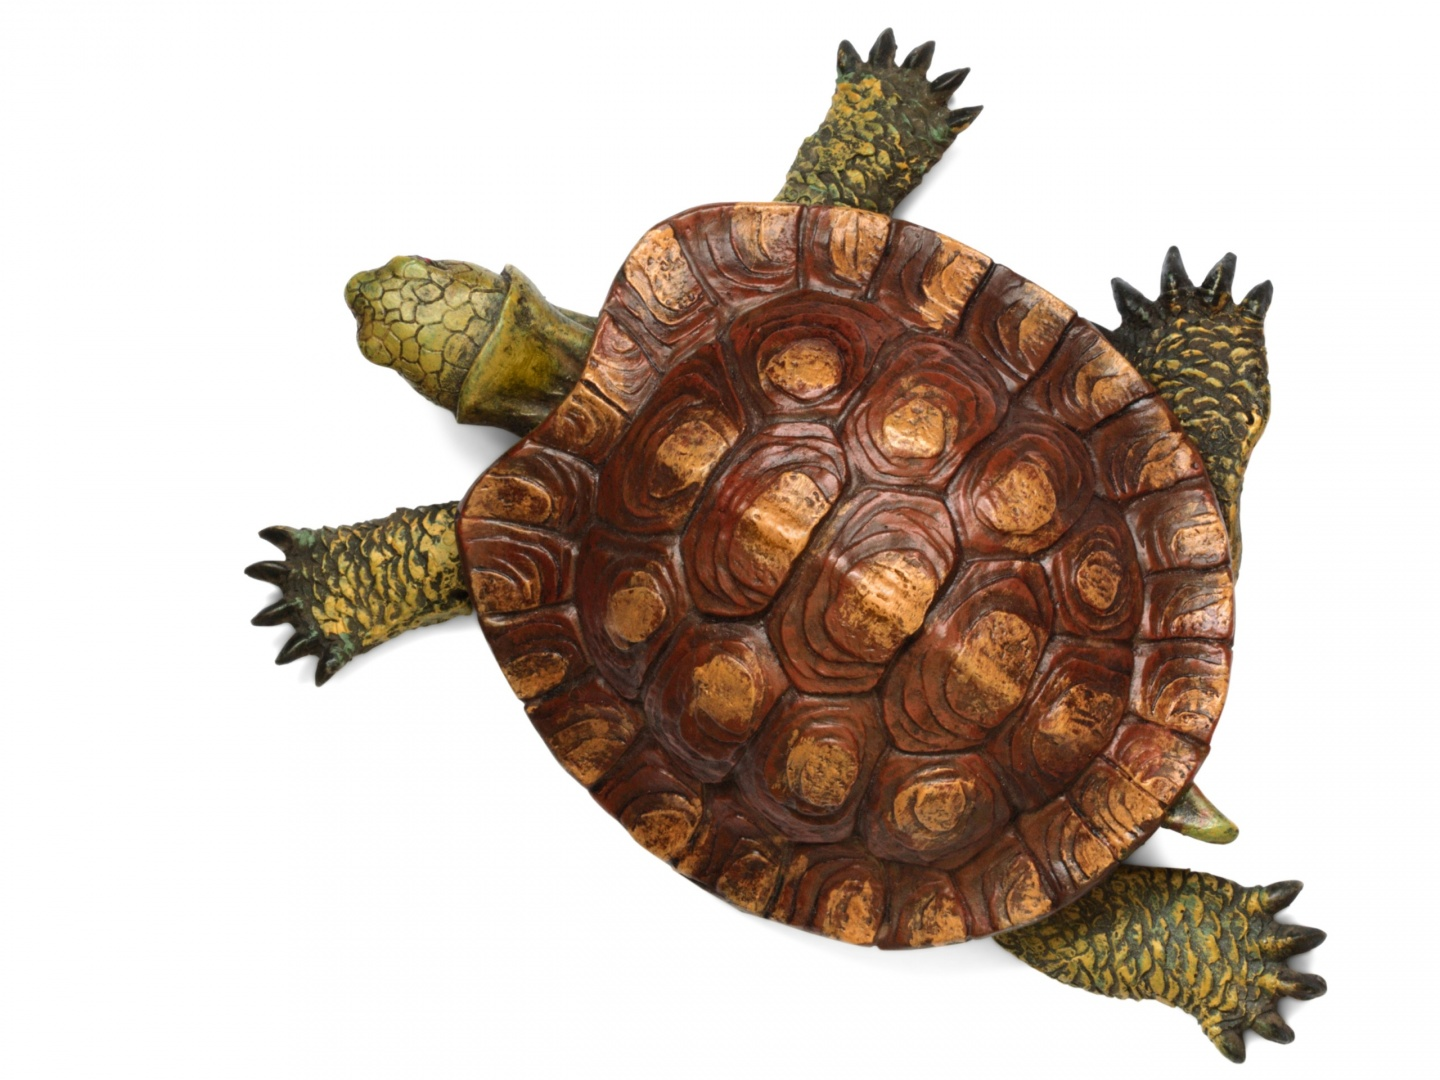 1440x900 Turtle top view